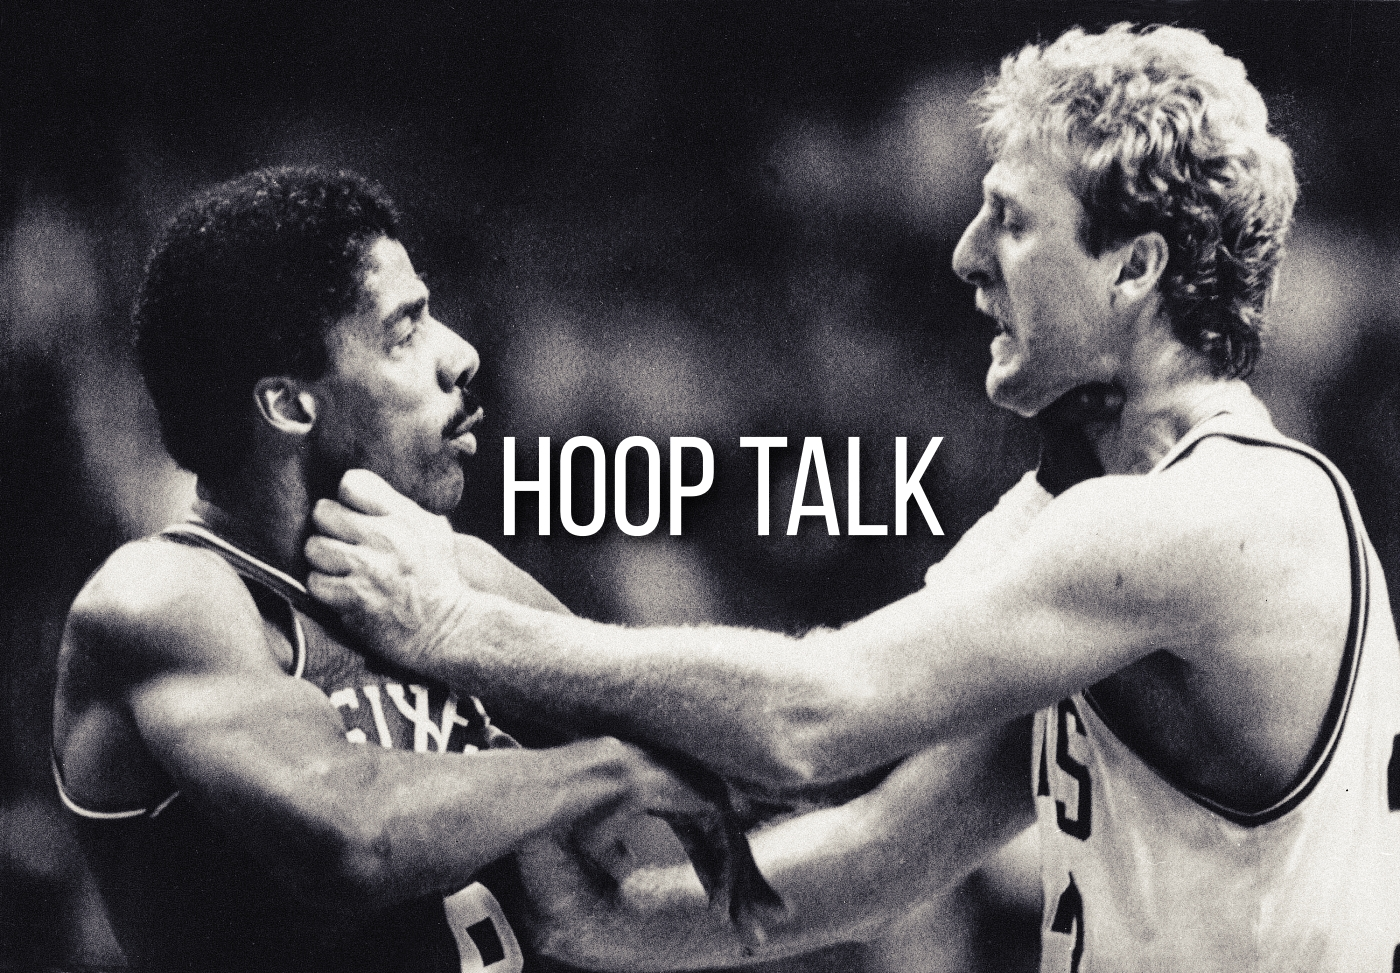 Larry Bird and Julius Erving in a tussle